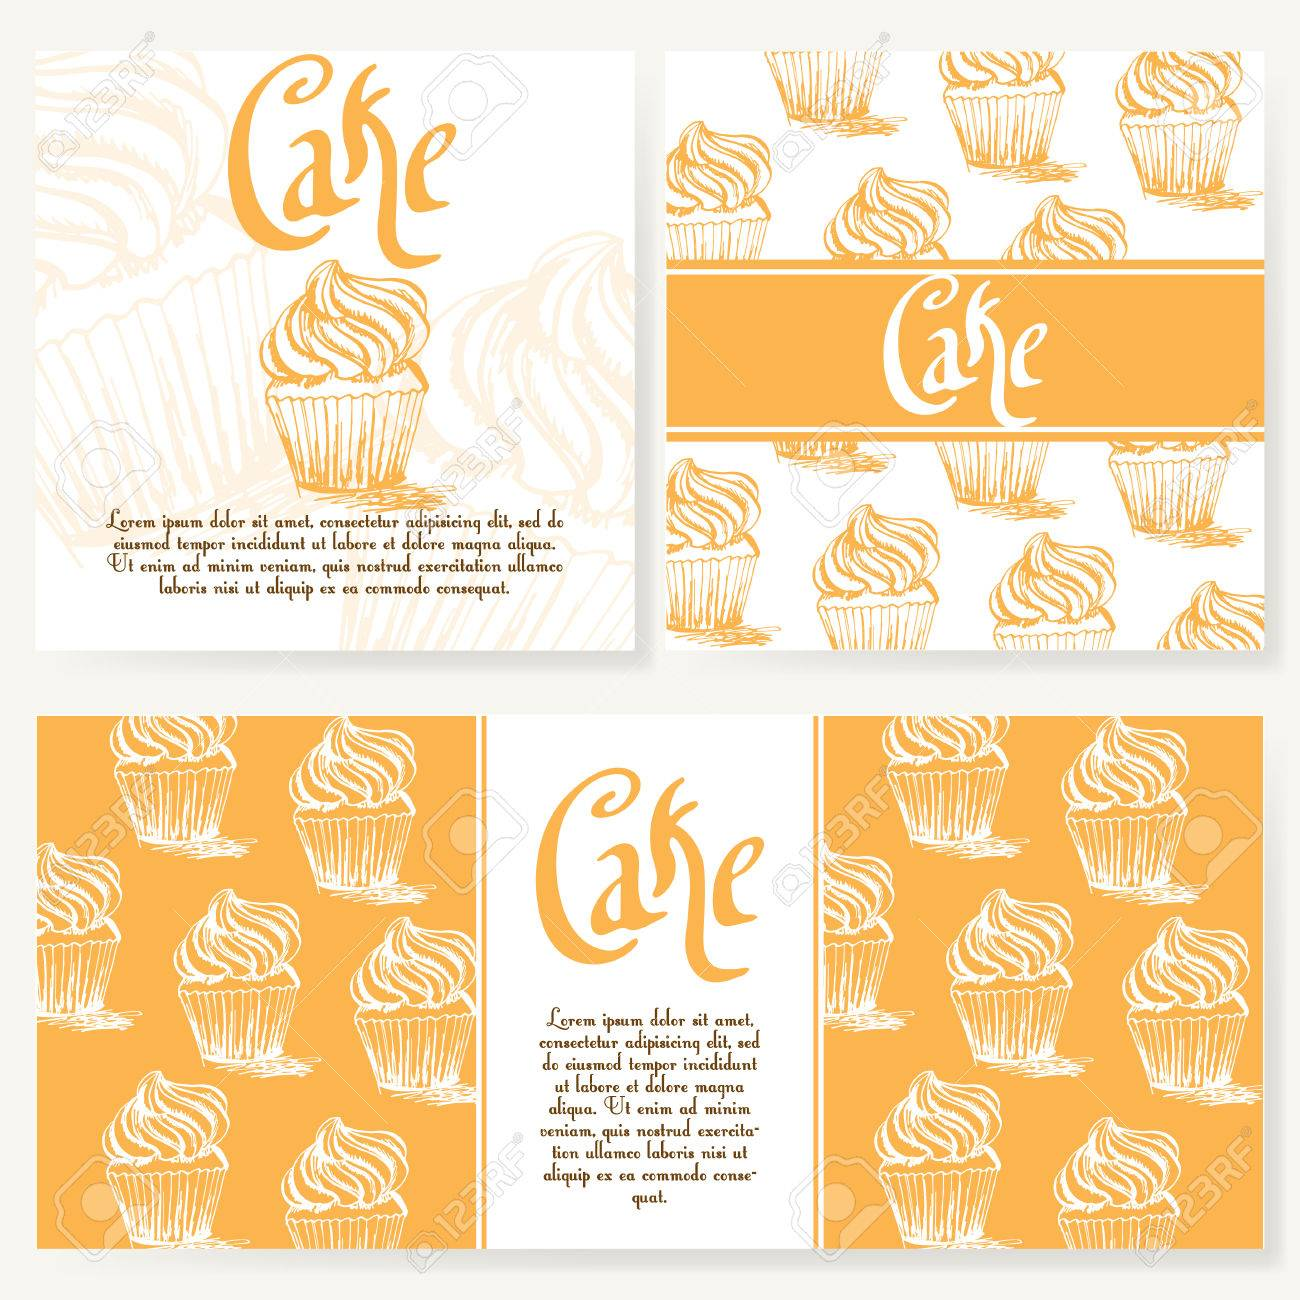 Design Templates Menu Sample Spa Menu Transportation Supervisor Jobs  49960265 Cafe Menu With Hand Drawn Design Dessert Restaurant Menu Template  Set Of Cards ...